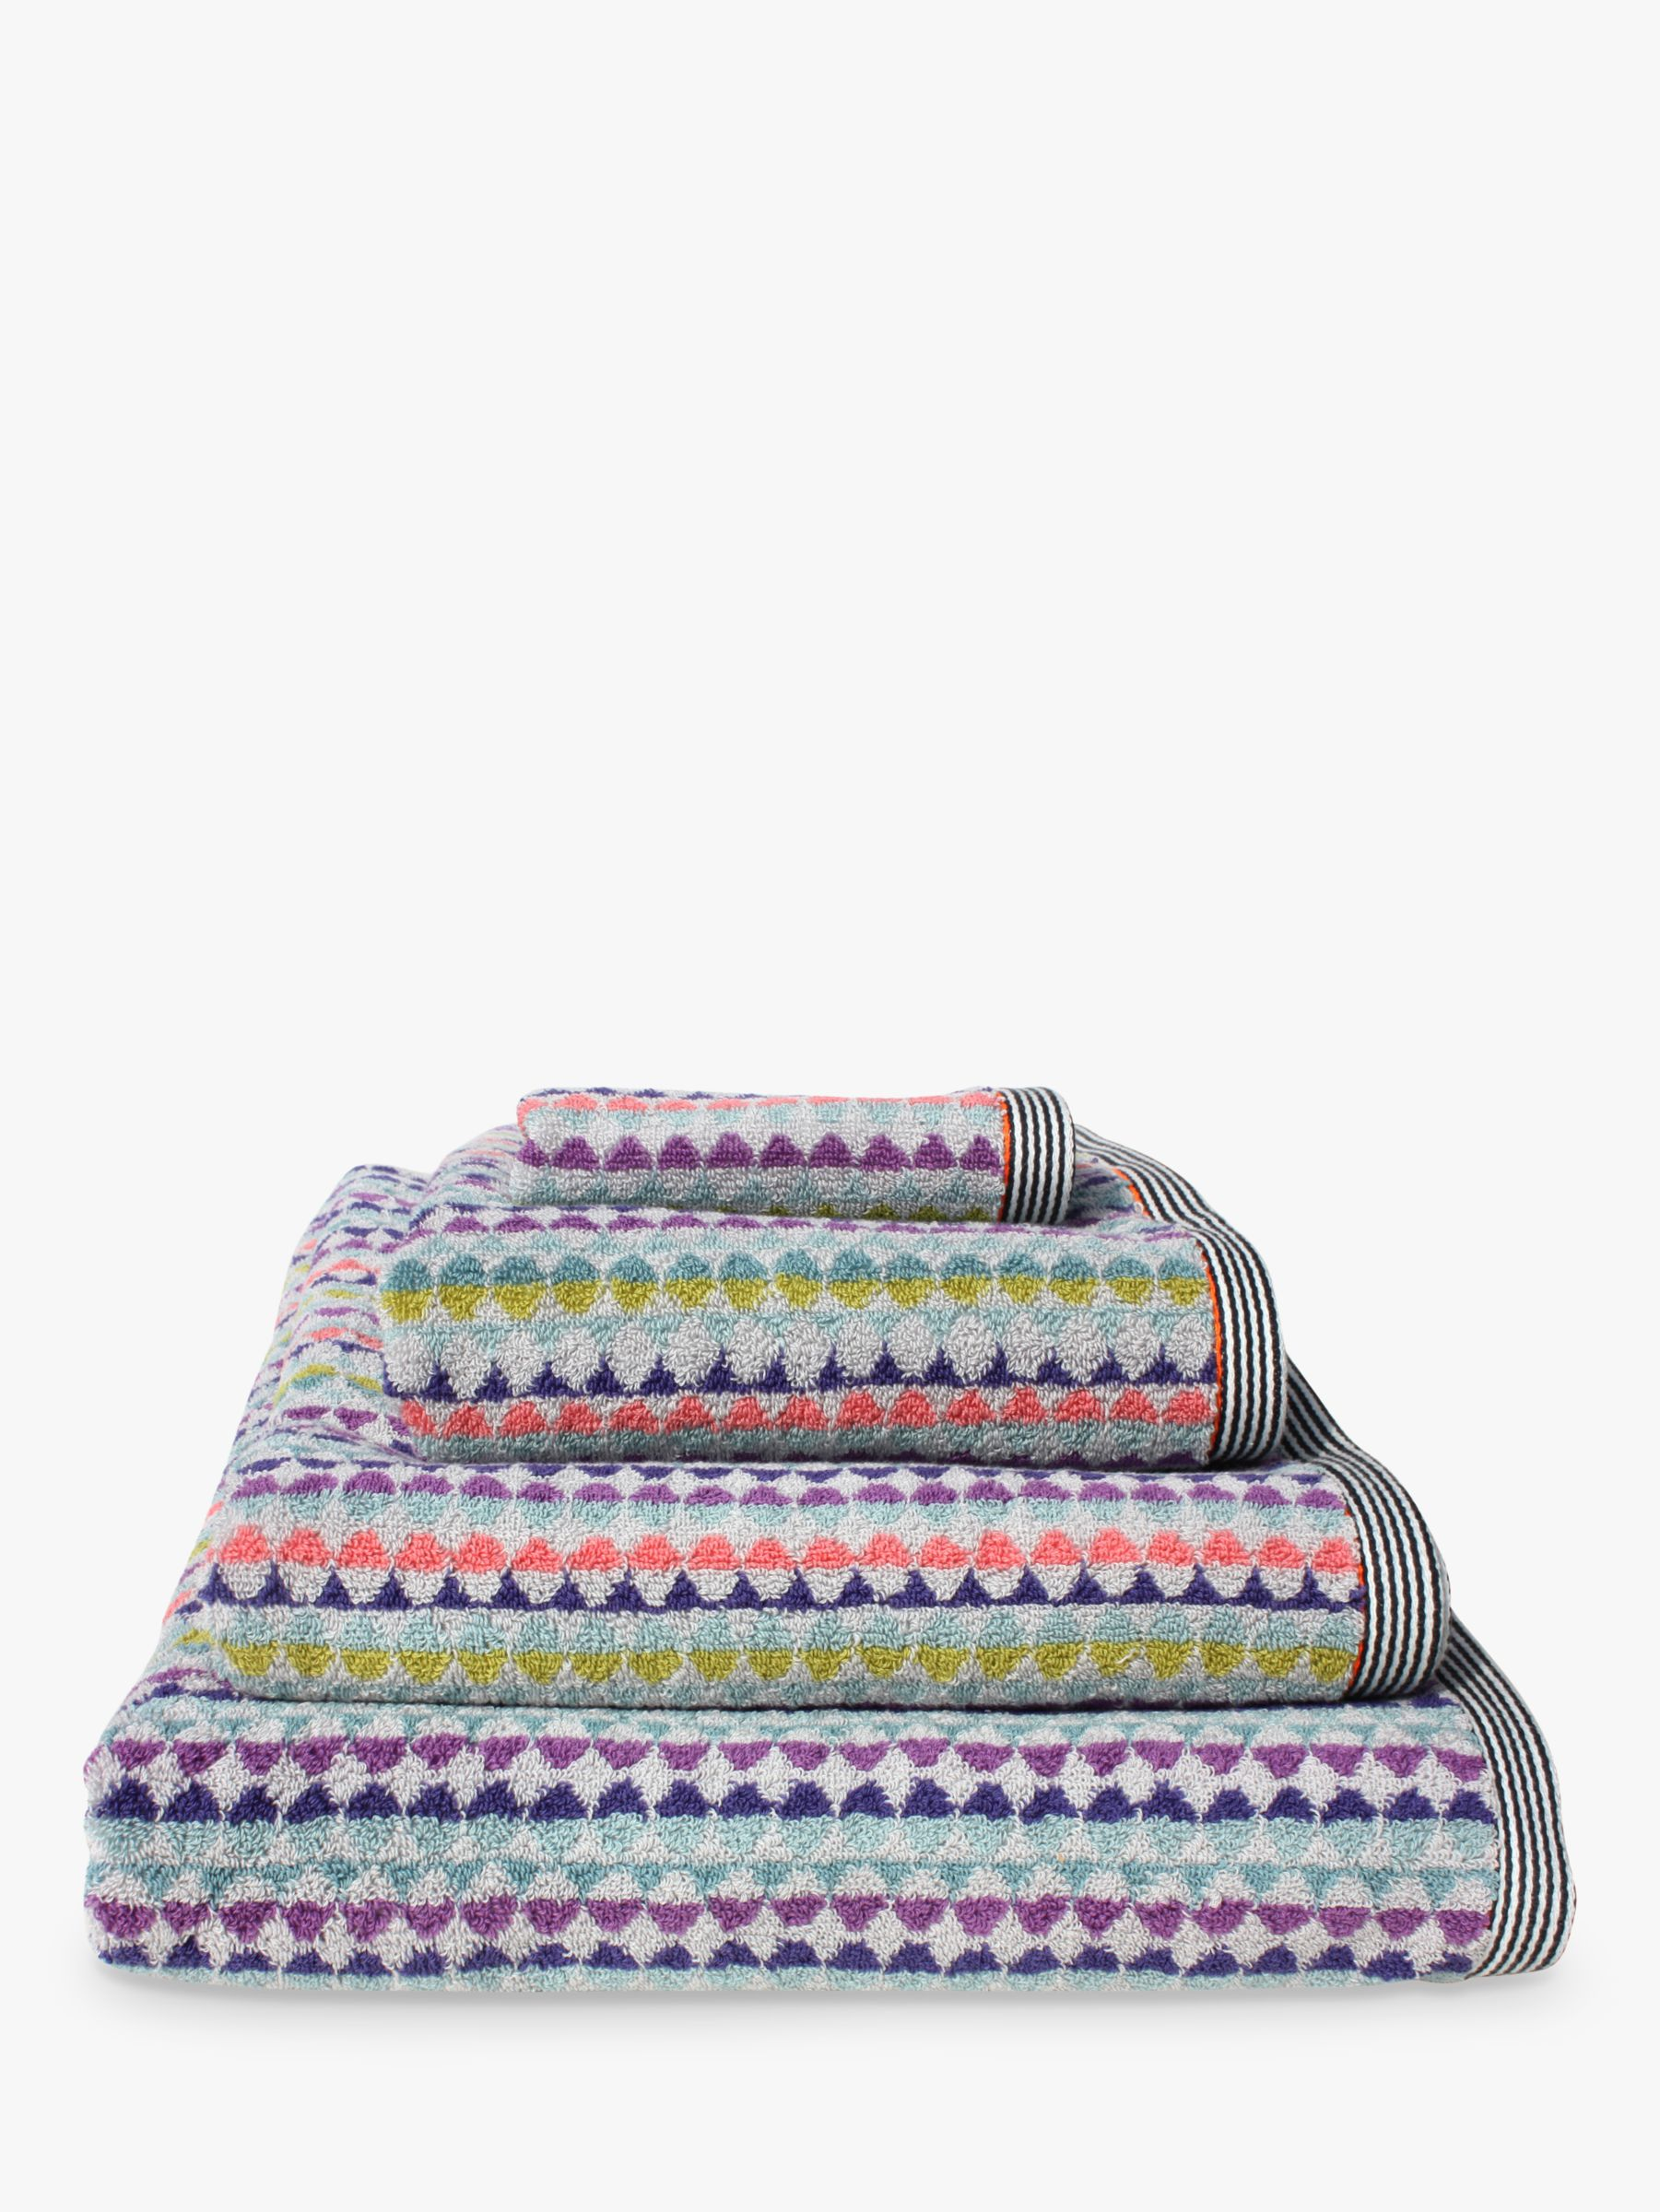 Margo Selby Margo Selby for John Lewis Hythe Towels, Multi